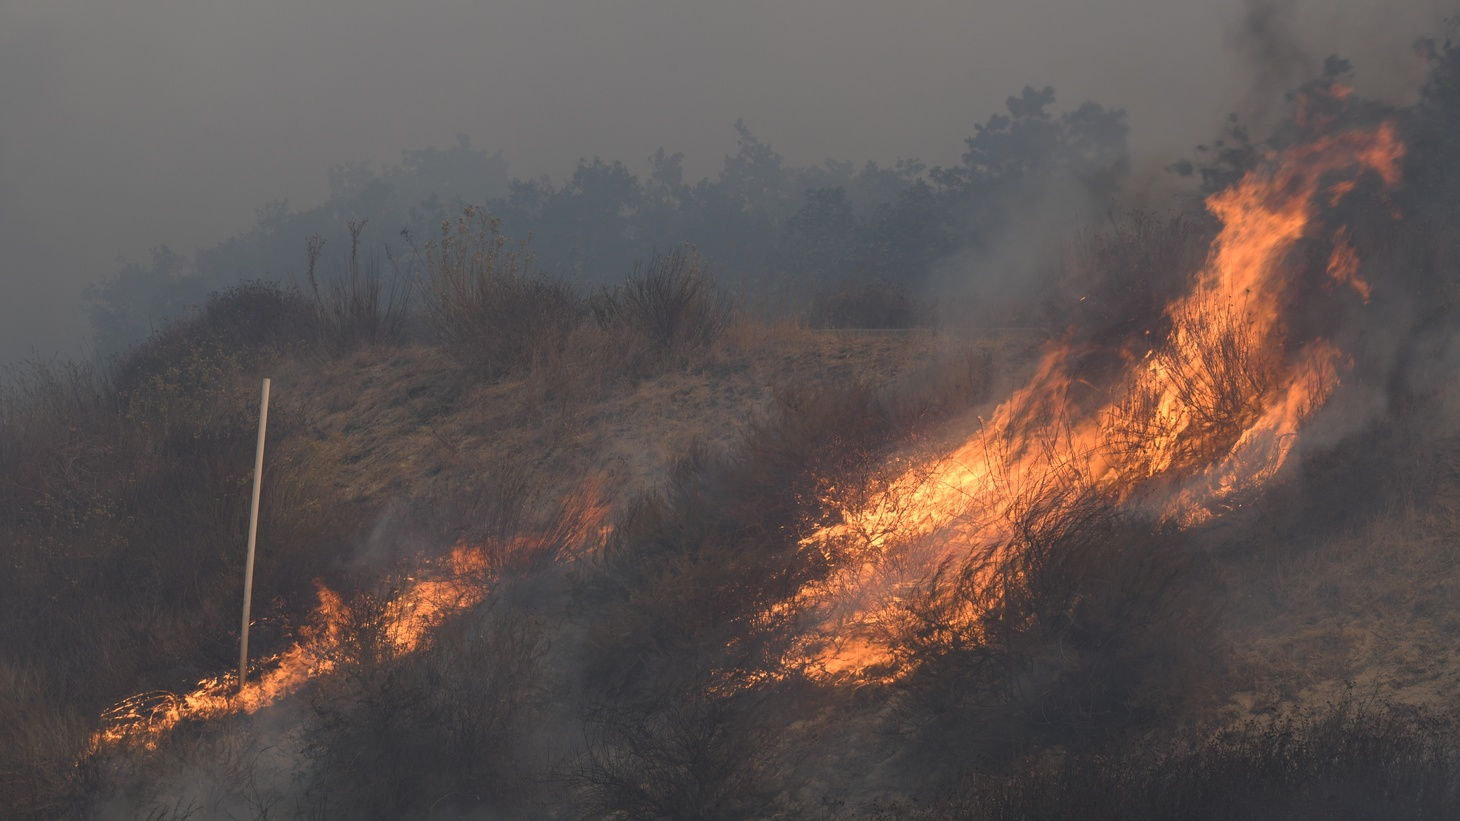 The Silverado Fire broke out Monday morning in Irvine's Silverado Canyon and quickly spread due to powerful winds, forcing tens of thousands of residents to evacuate.